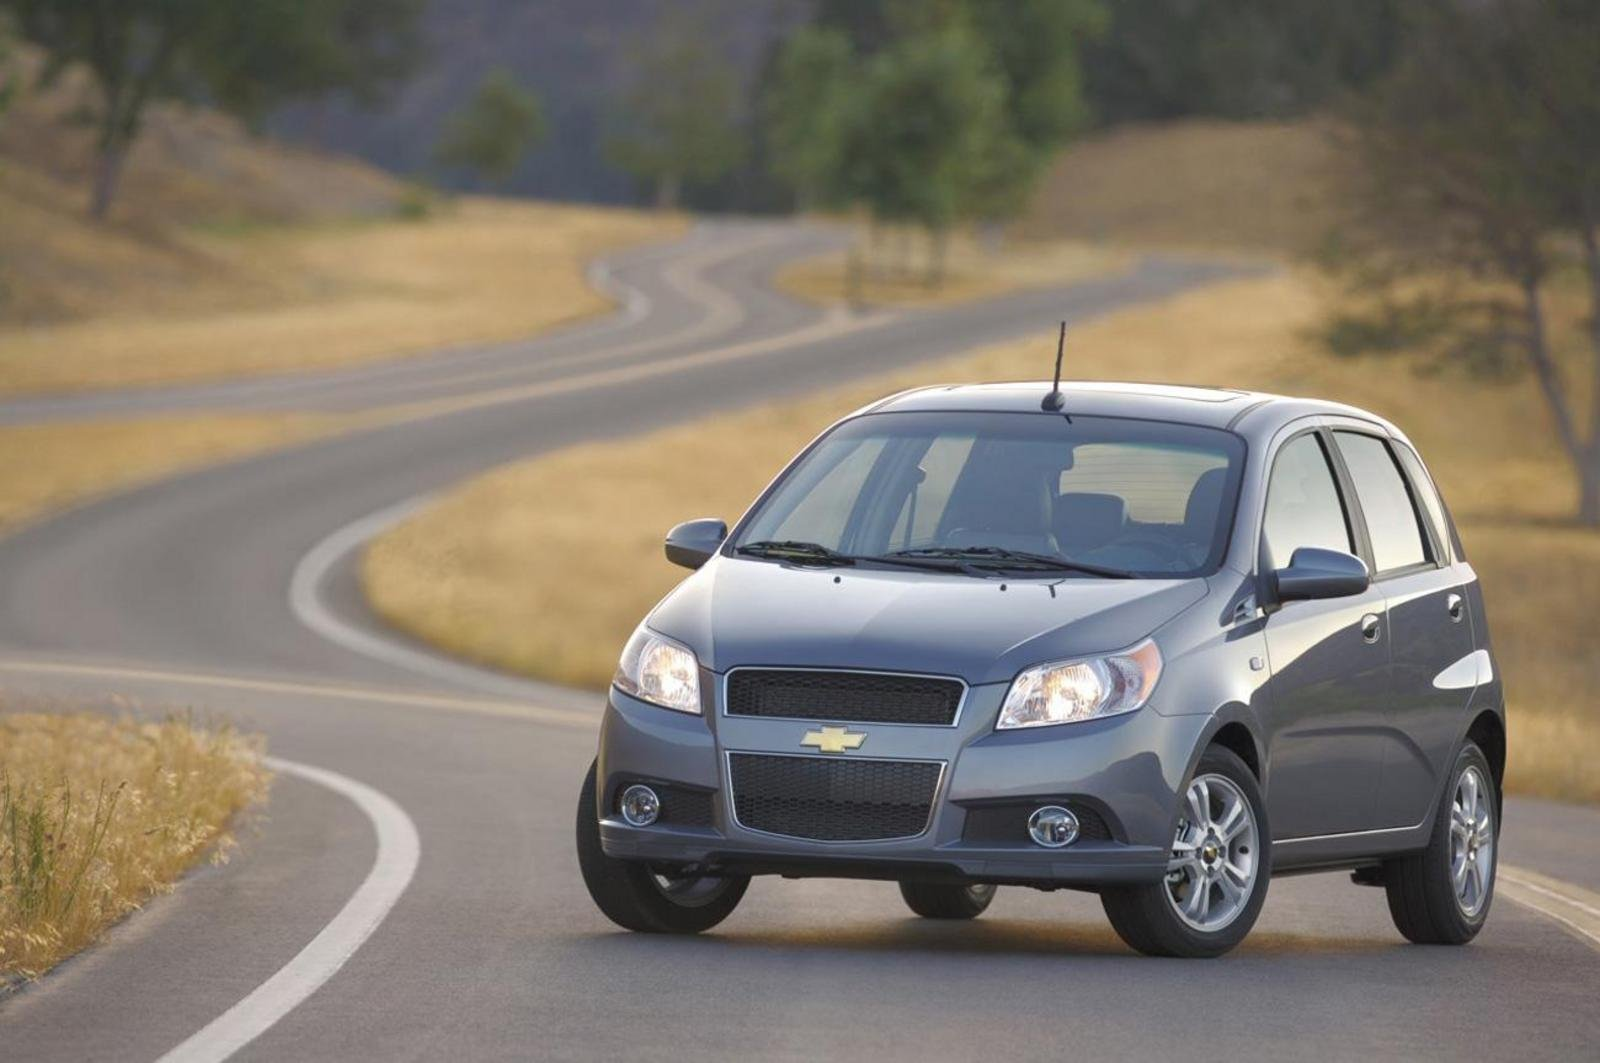 2009 chevrolet aveo5 review top speed. Black Bedroom Furniture Sets. Home Design Ideas